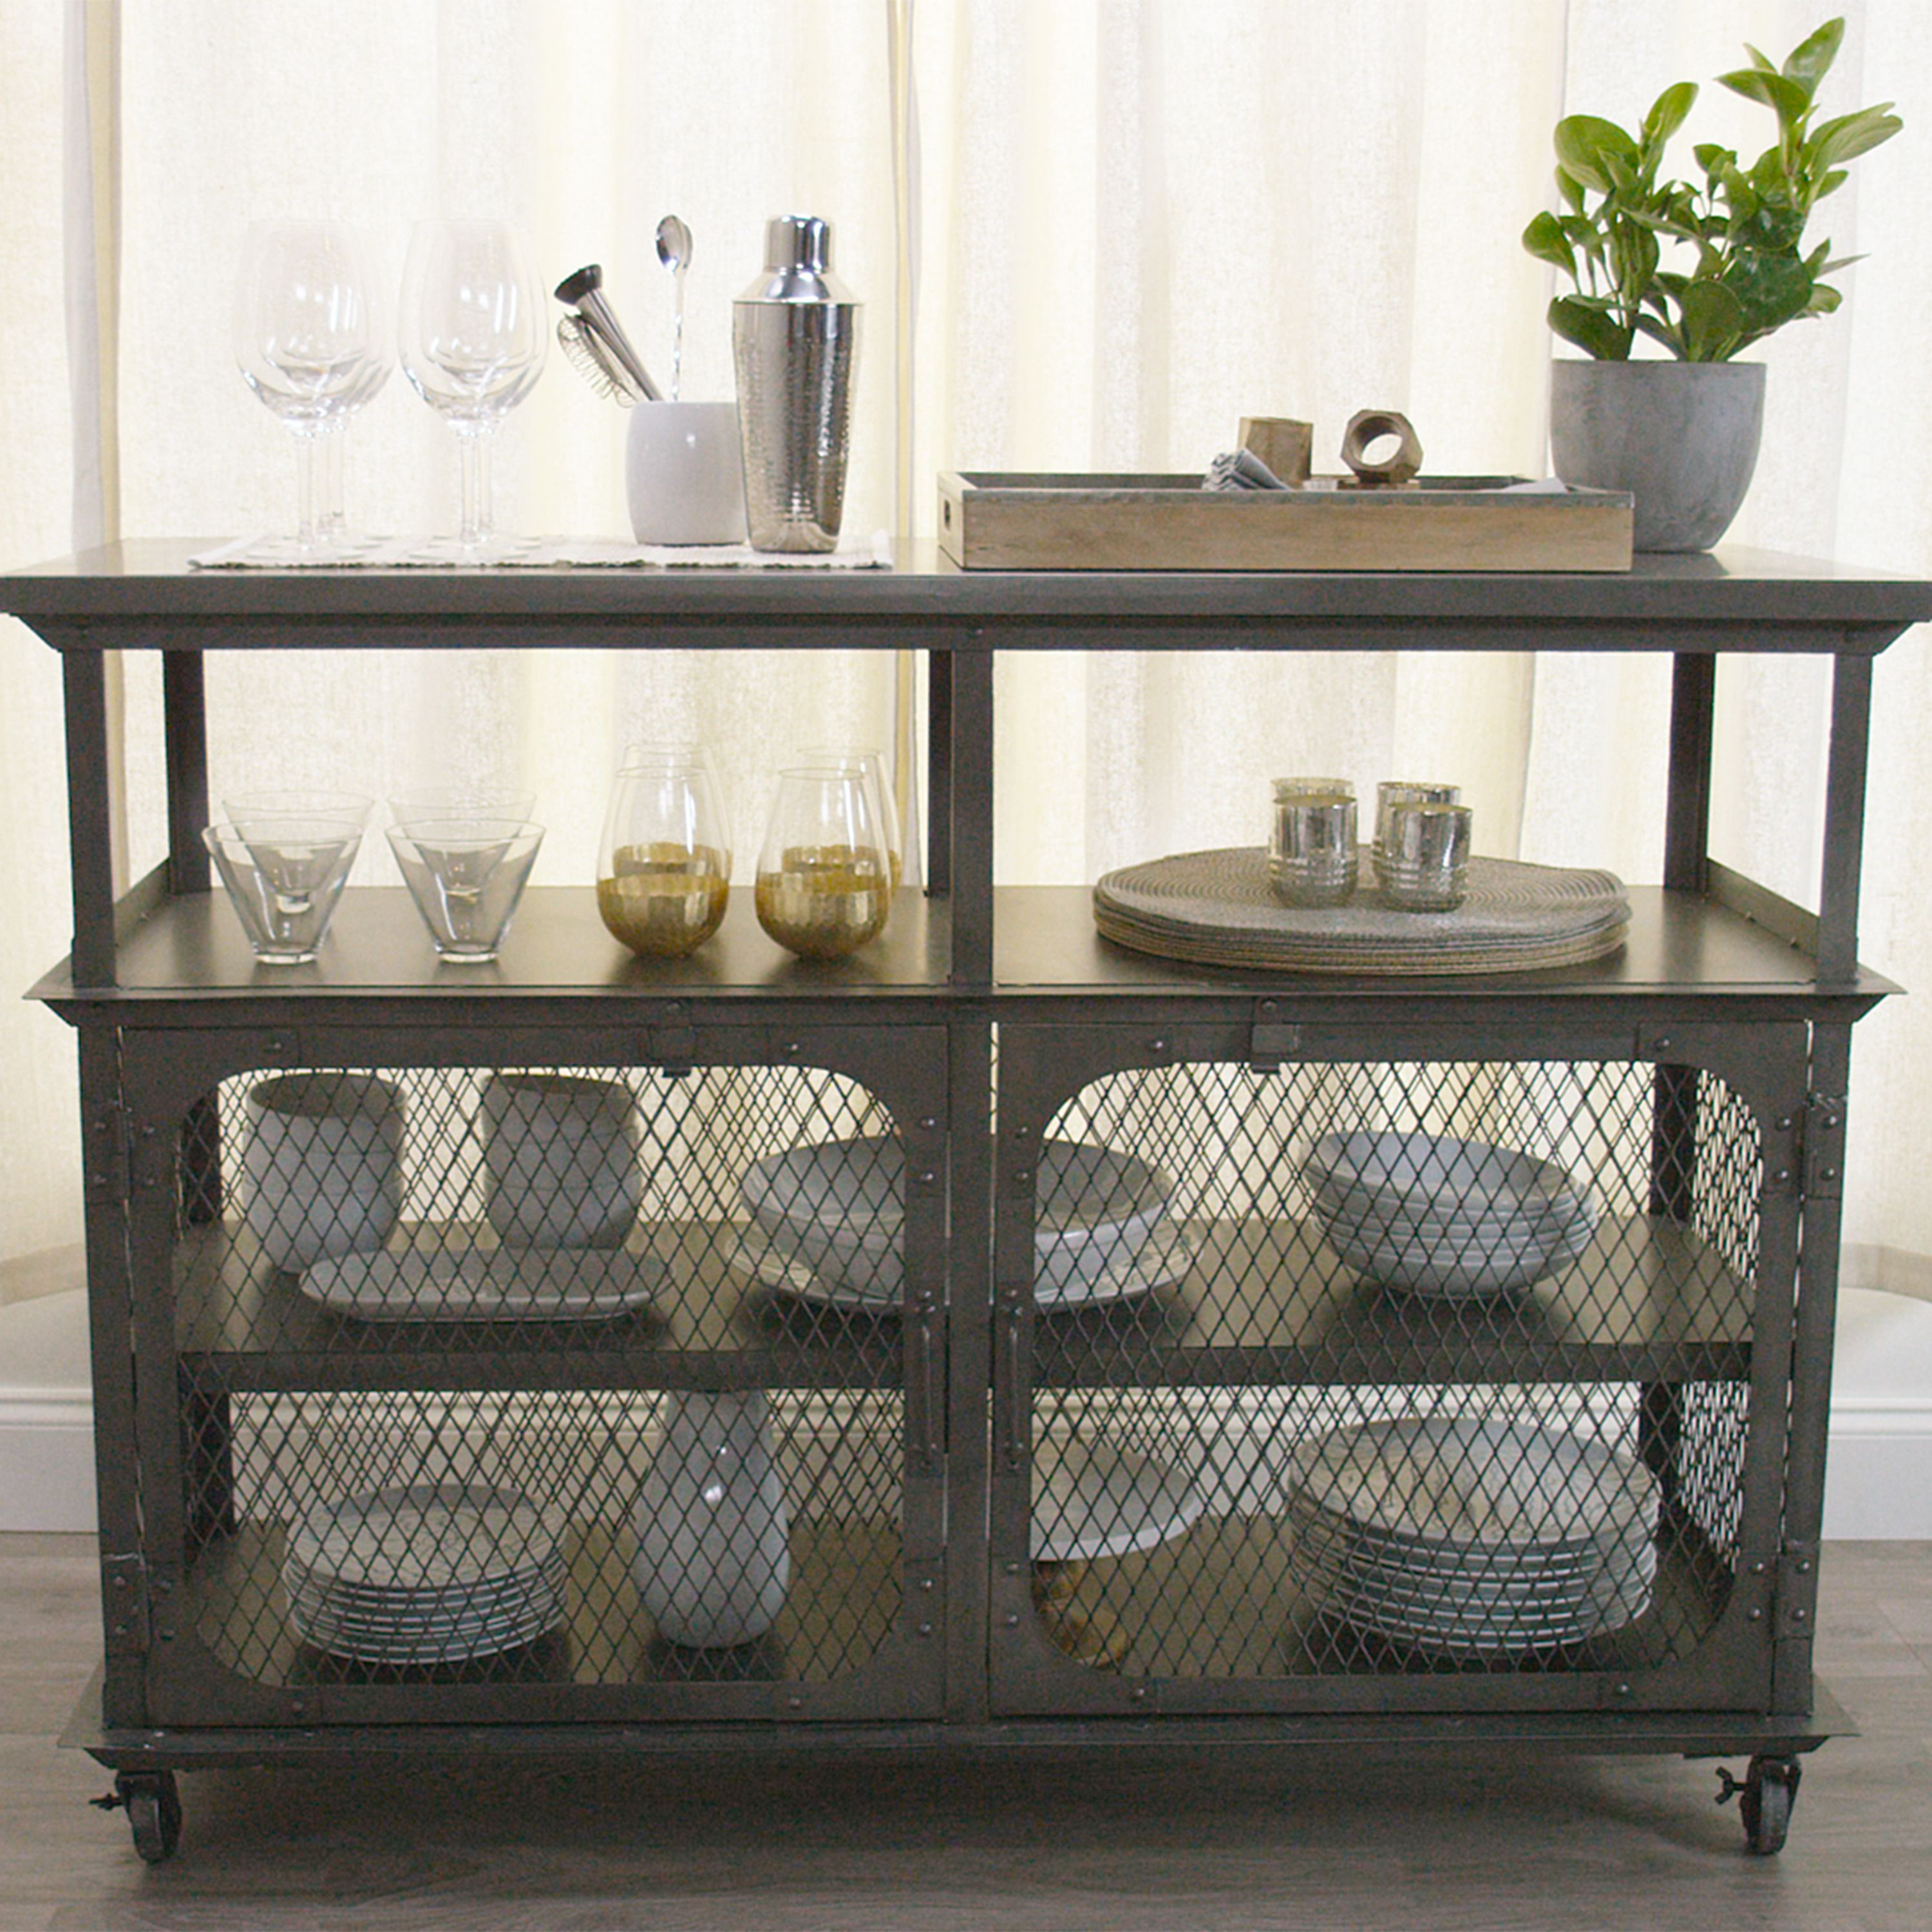 Exuding an industrial appeal our all-metal bar features locking caster wheels and &le storage with two large shelves behind cage doors. & Exuding an industrial appeal our all-metal bar features locking ...